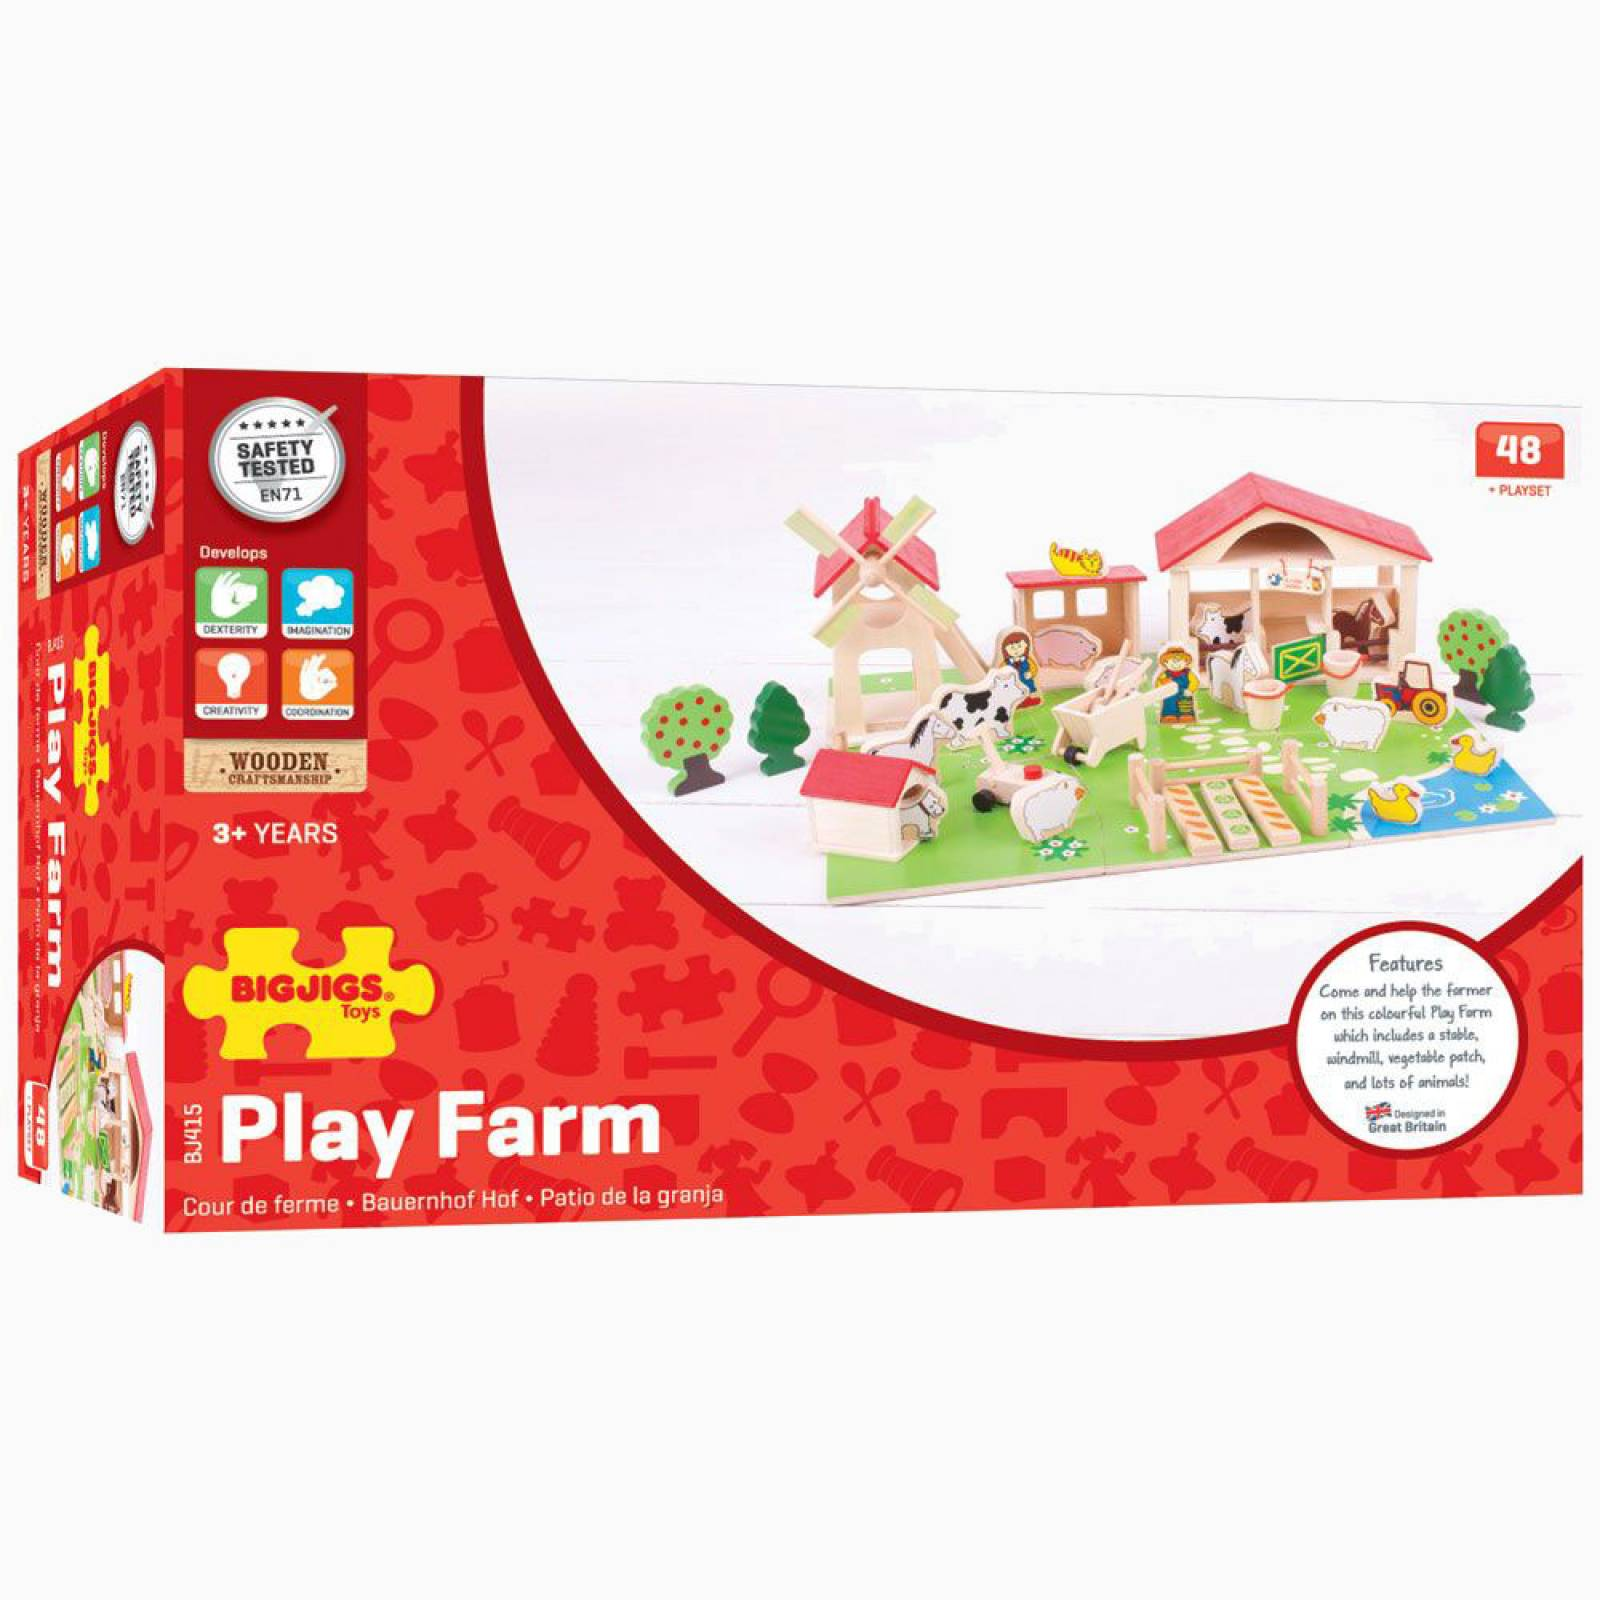 Wooden Traditional Play Farm Set with 49 Pieces thumbnails